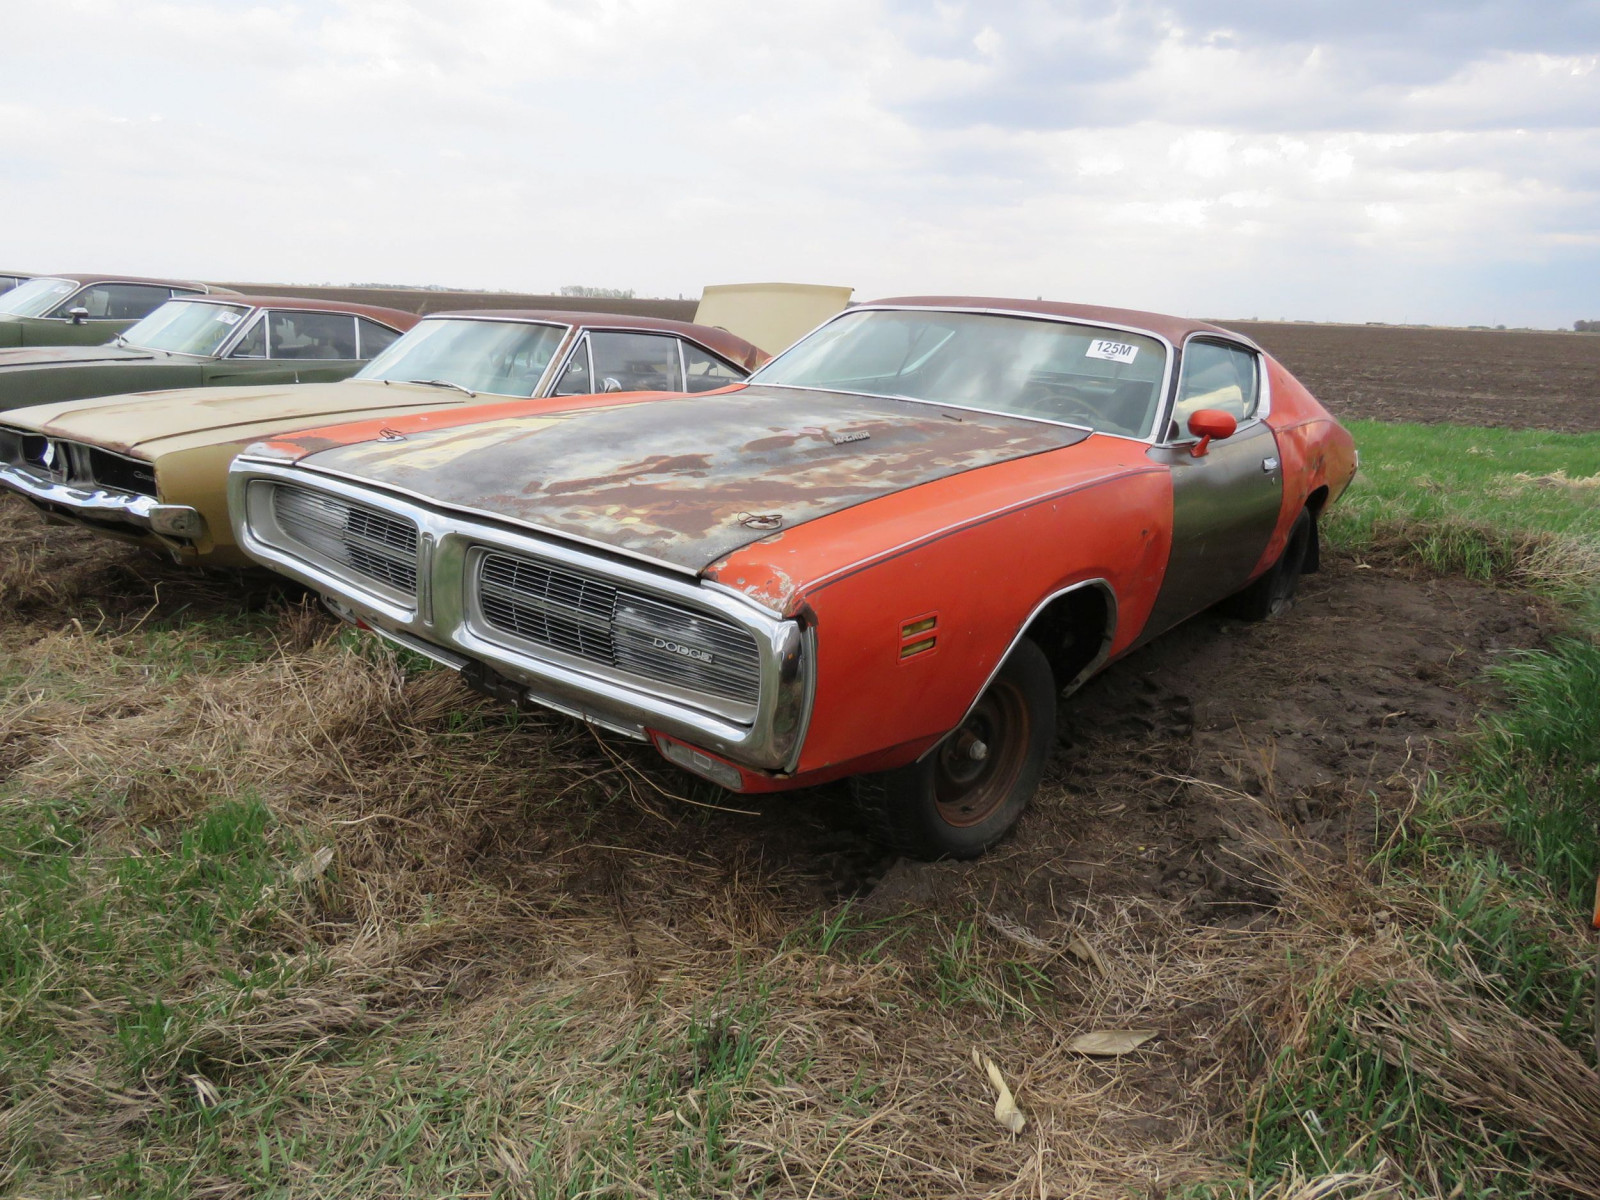 1971 Dodge Charger Coupe - Image 1